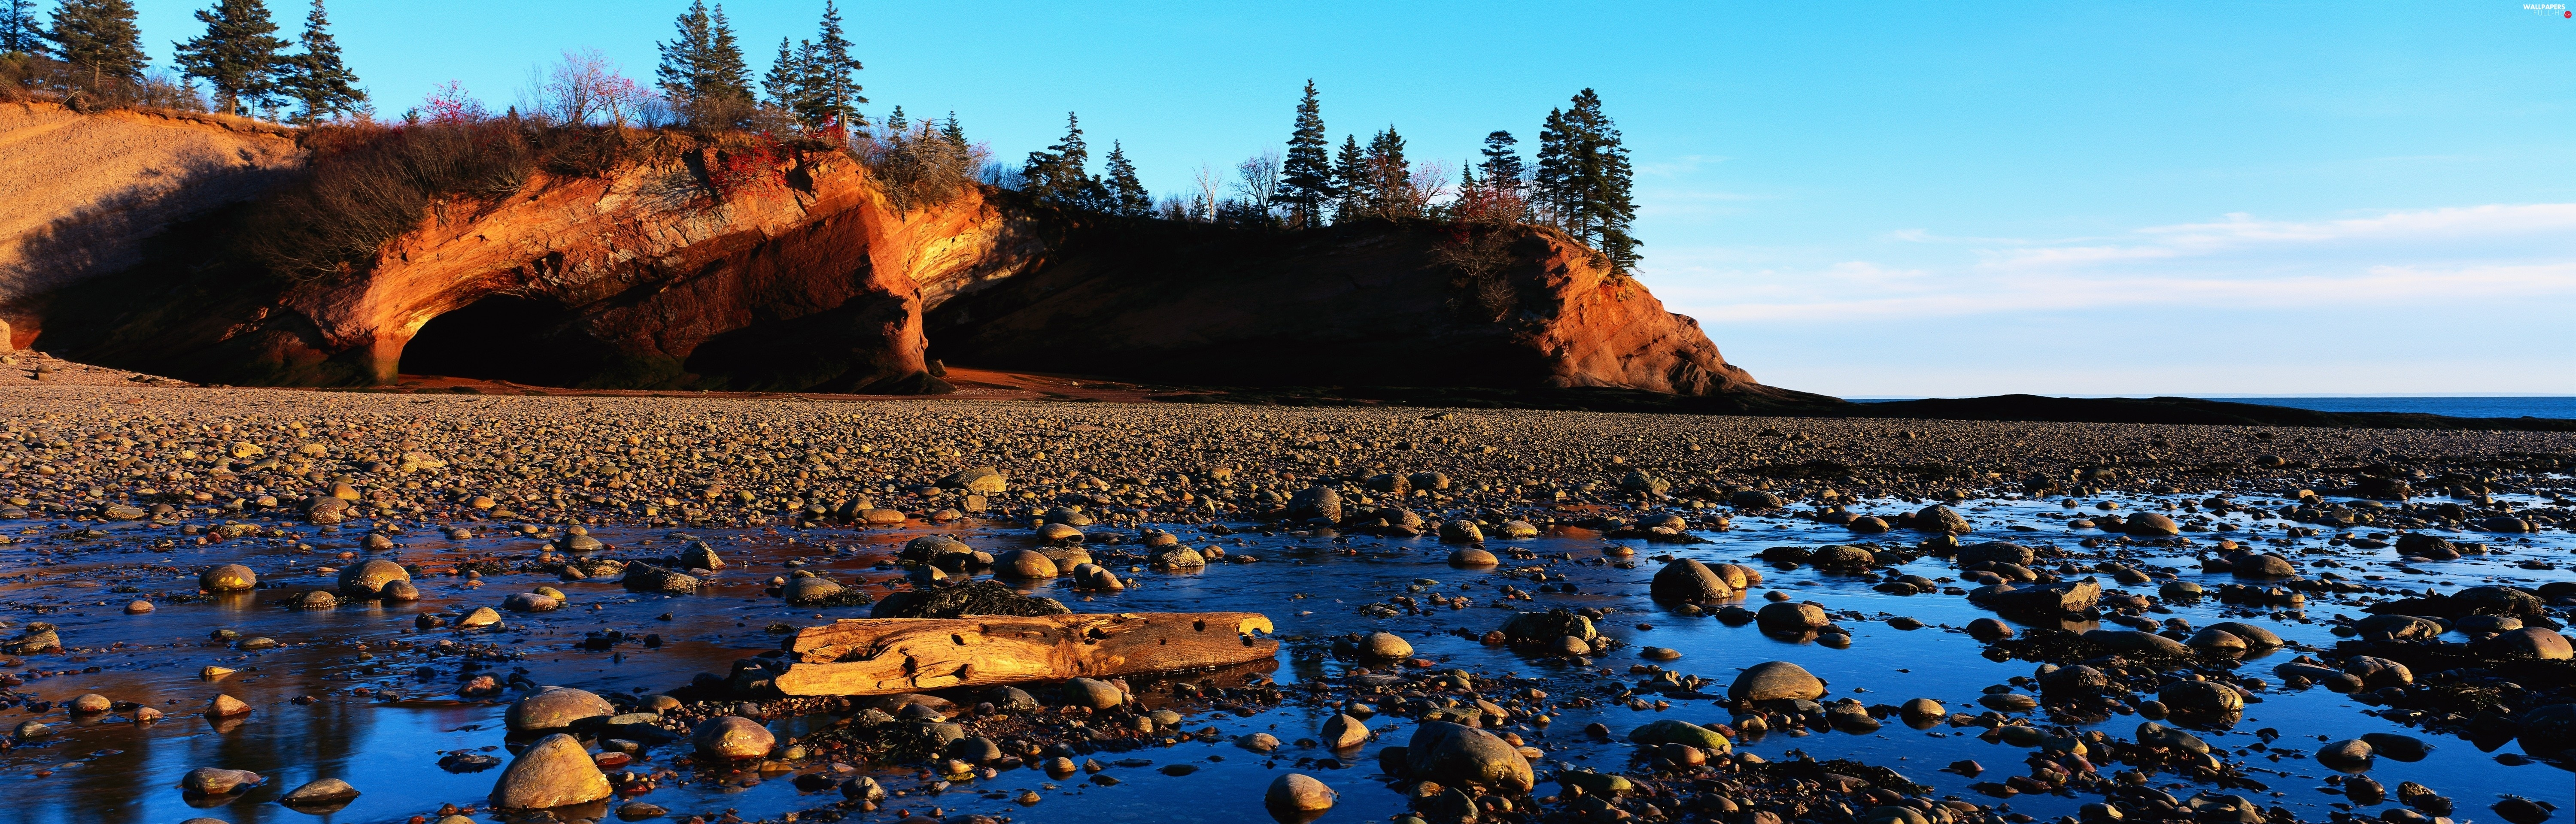 viewes, rocks, trees, coast, Conifers, Stones